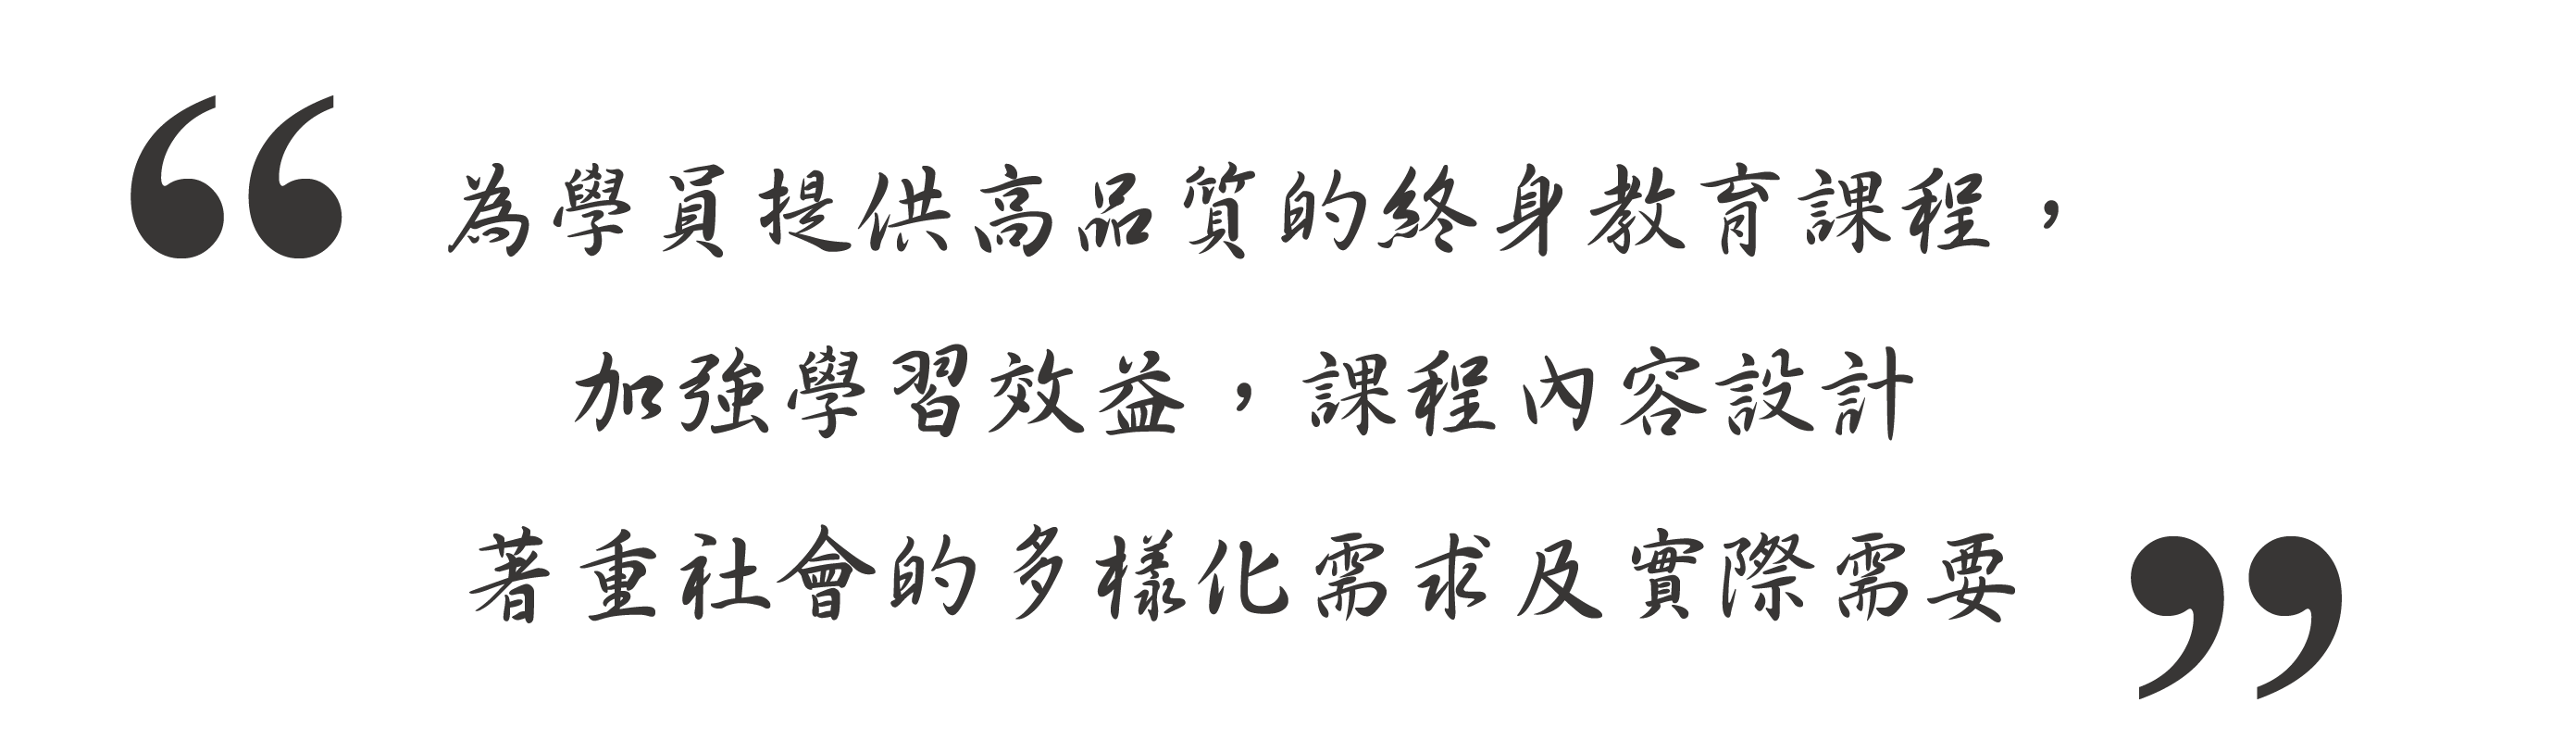 LLO Mission Statement Chinese